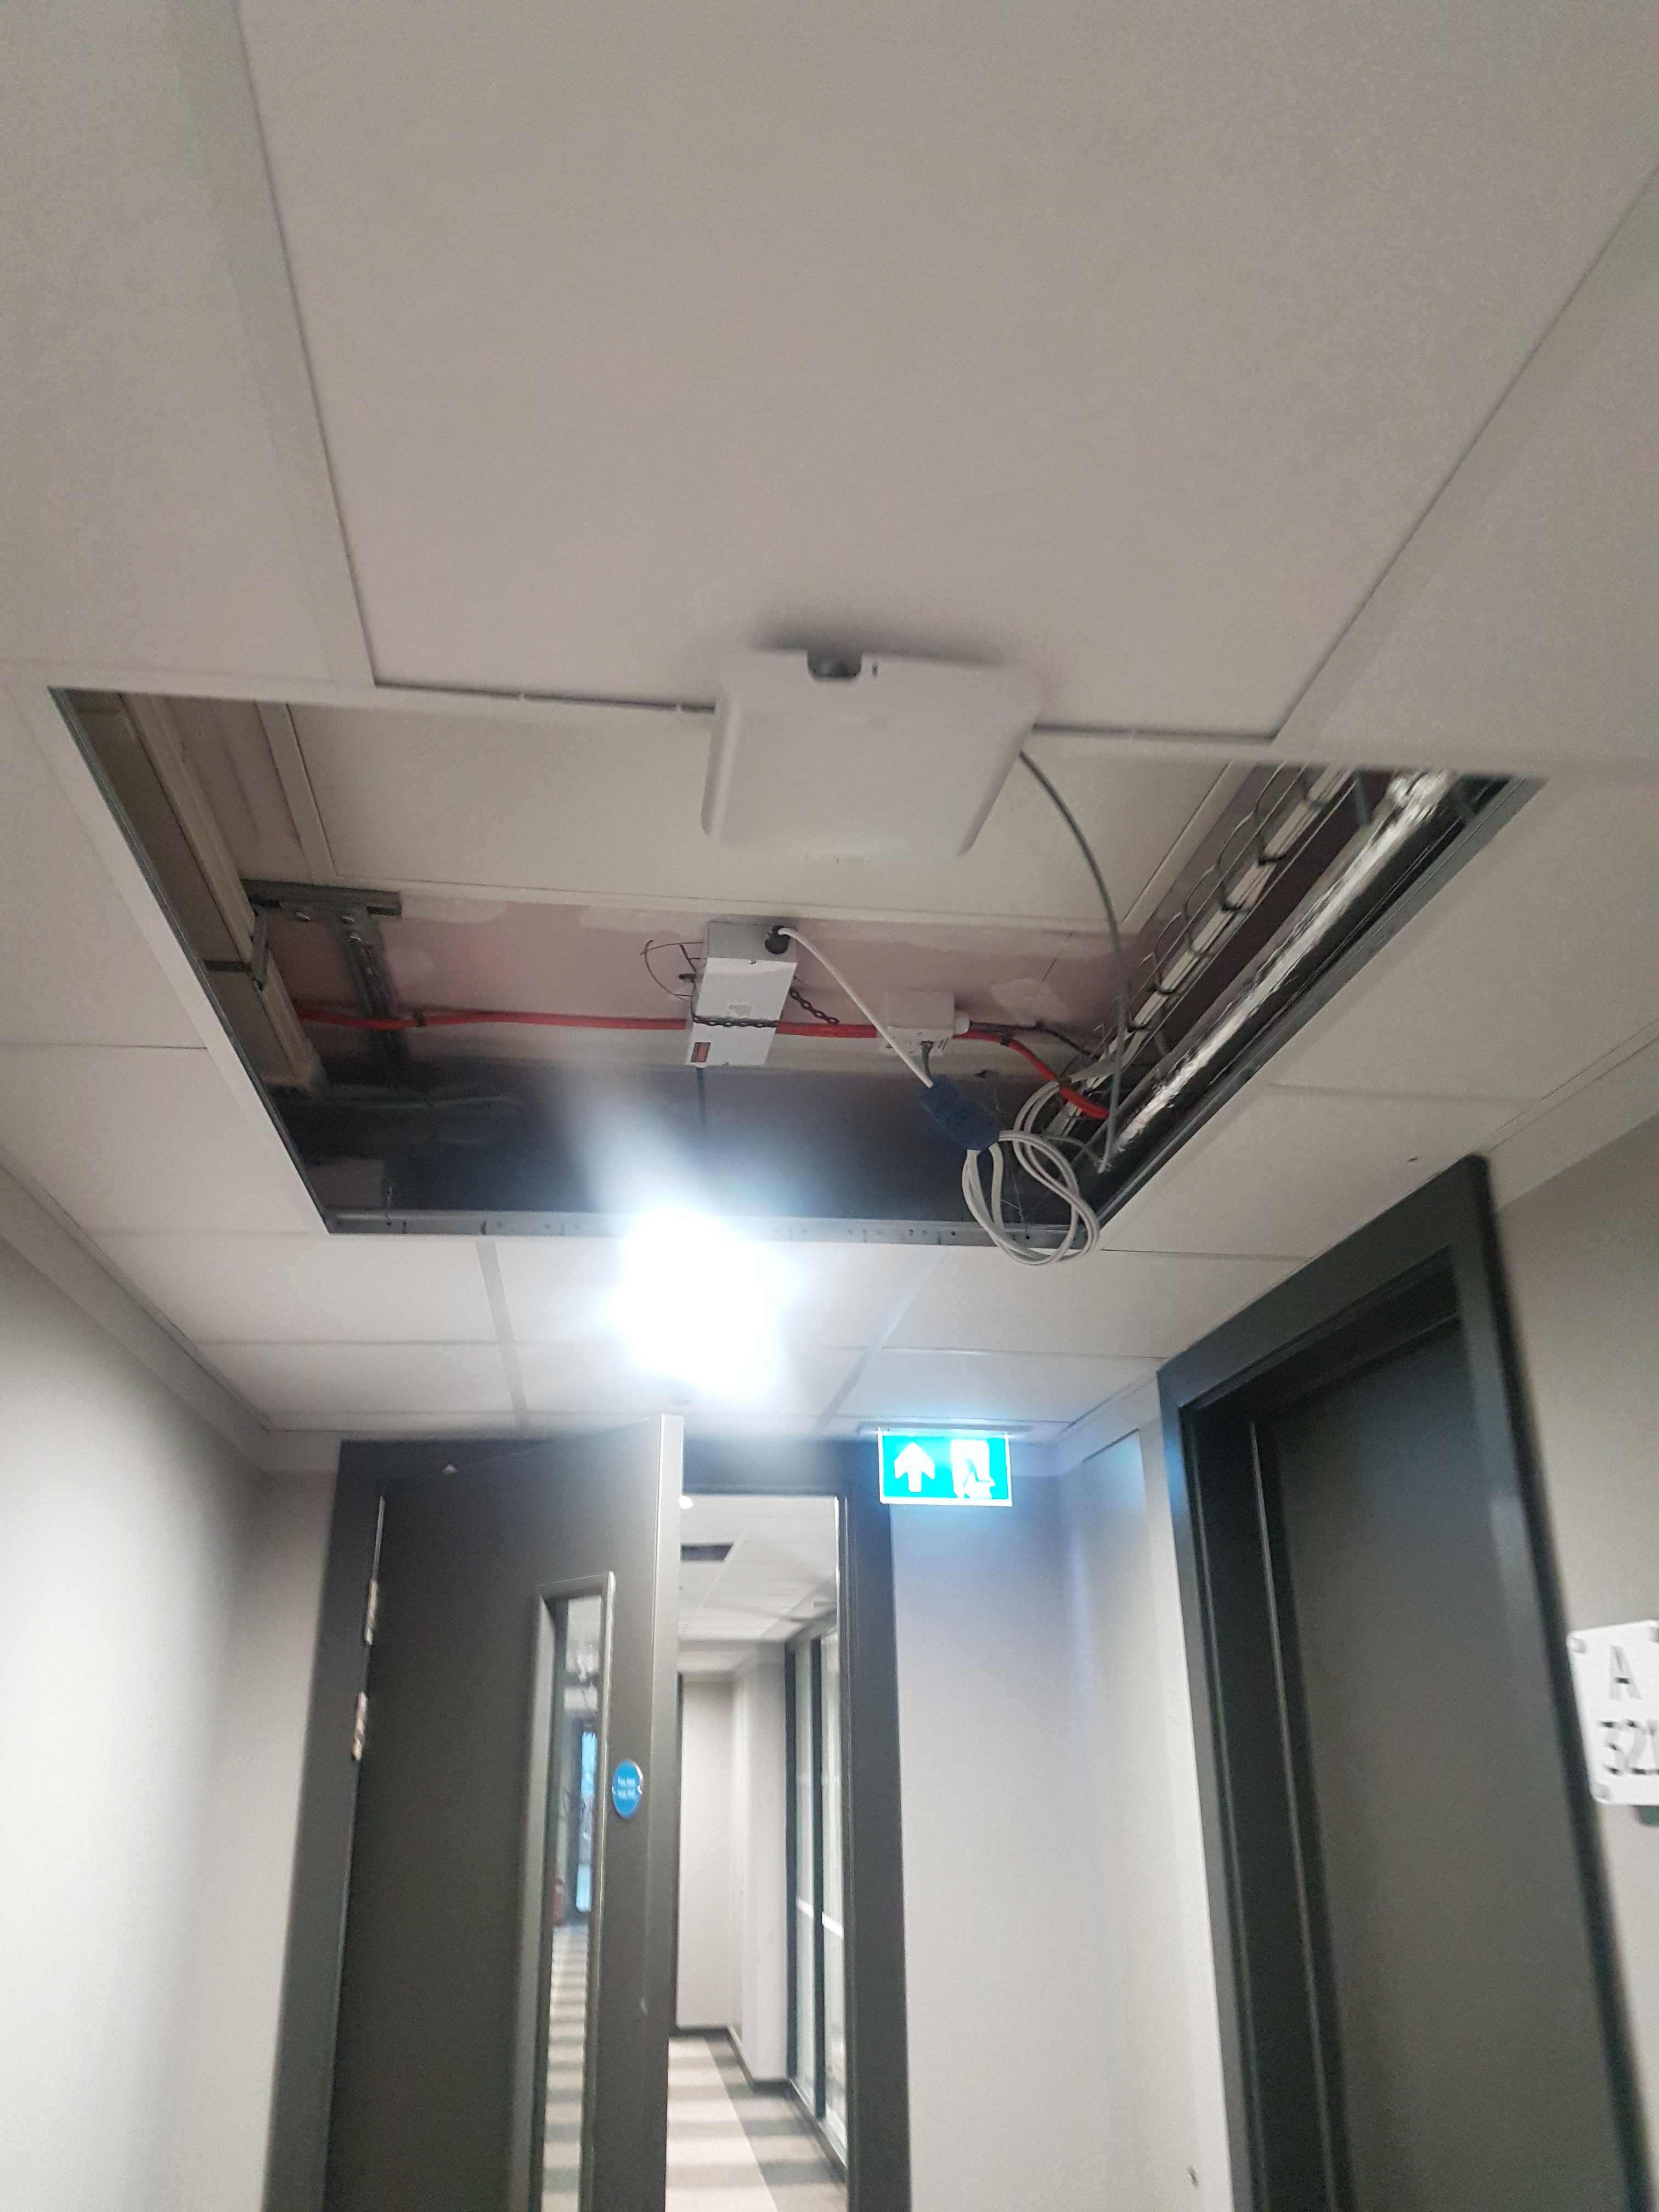 Ceiling with exposed wiring